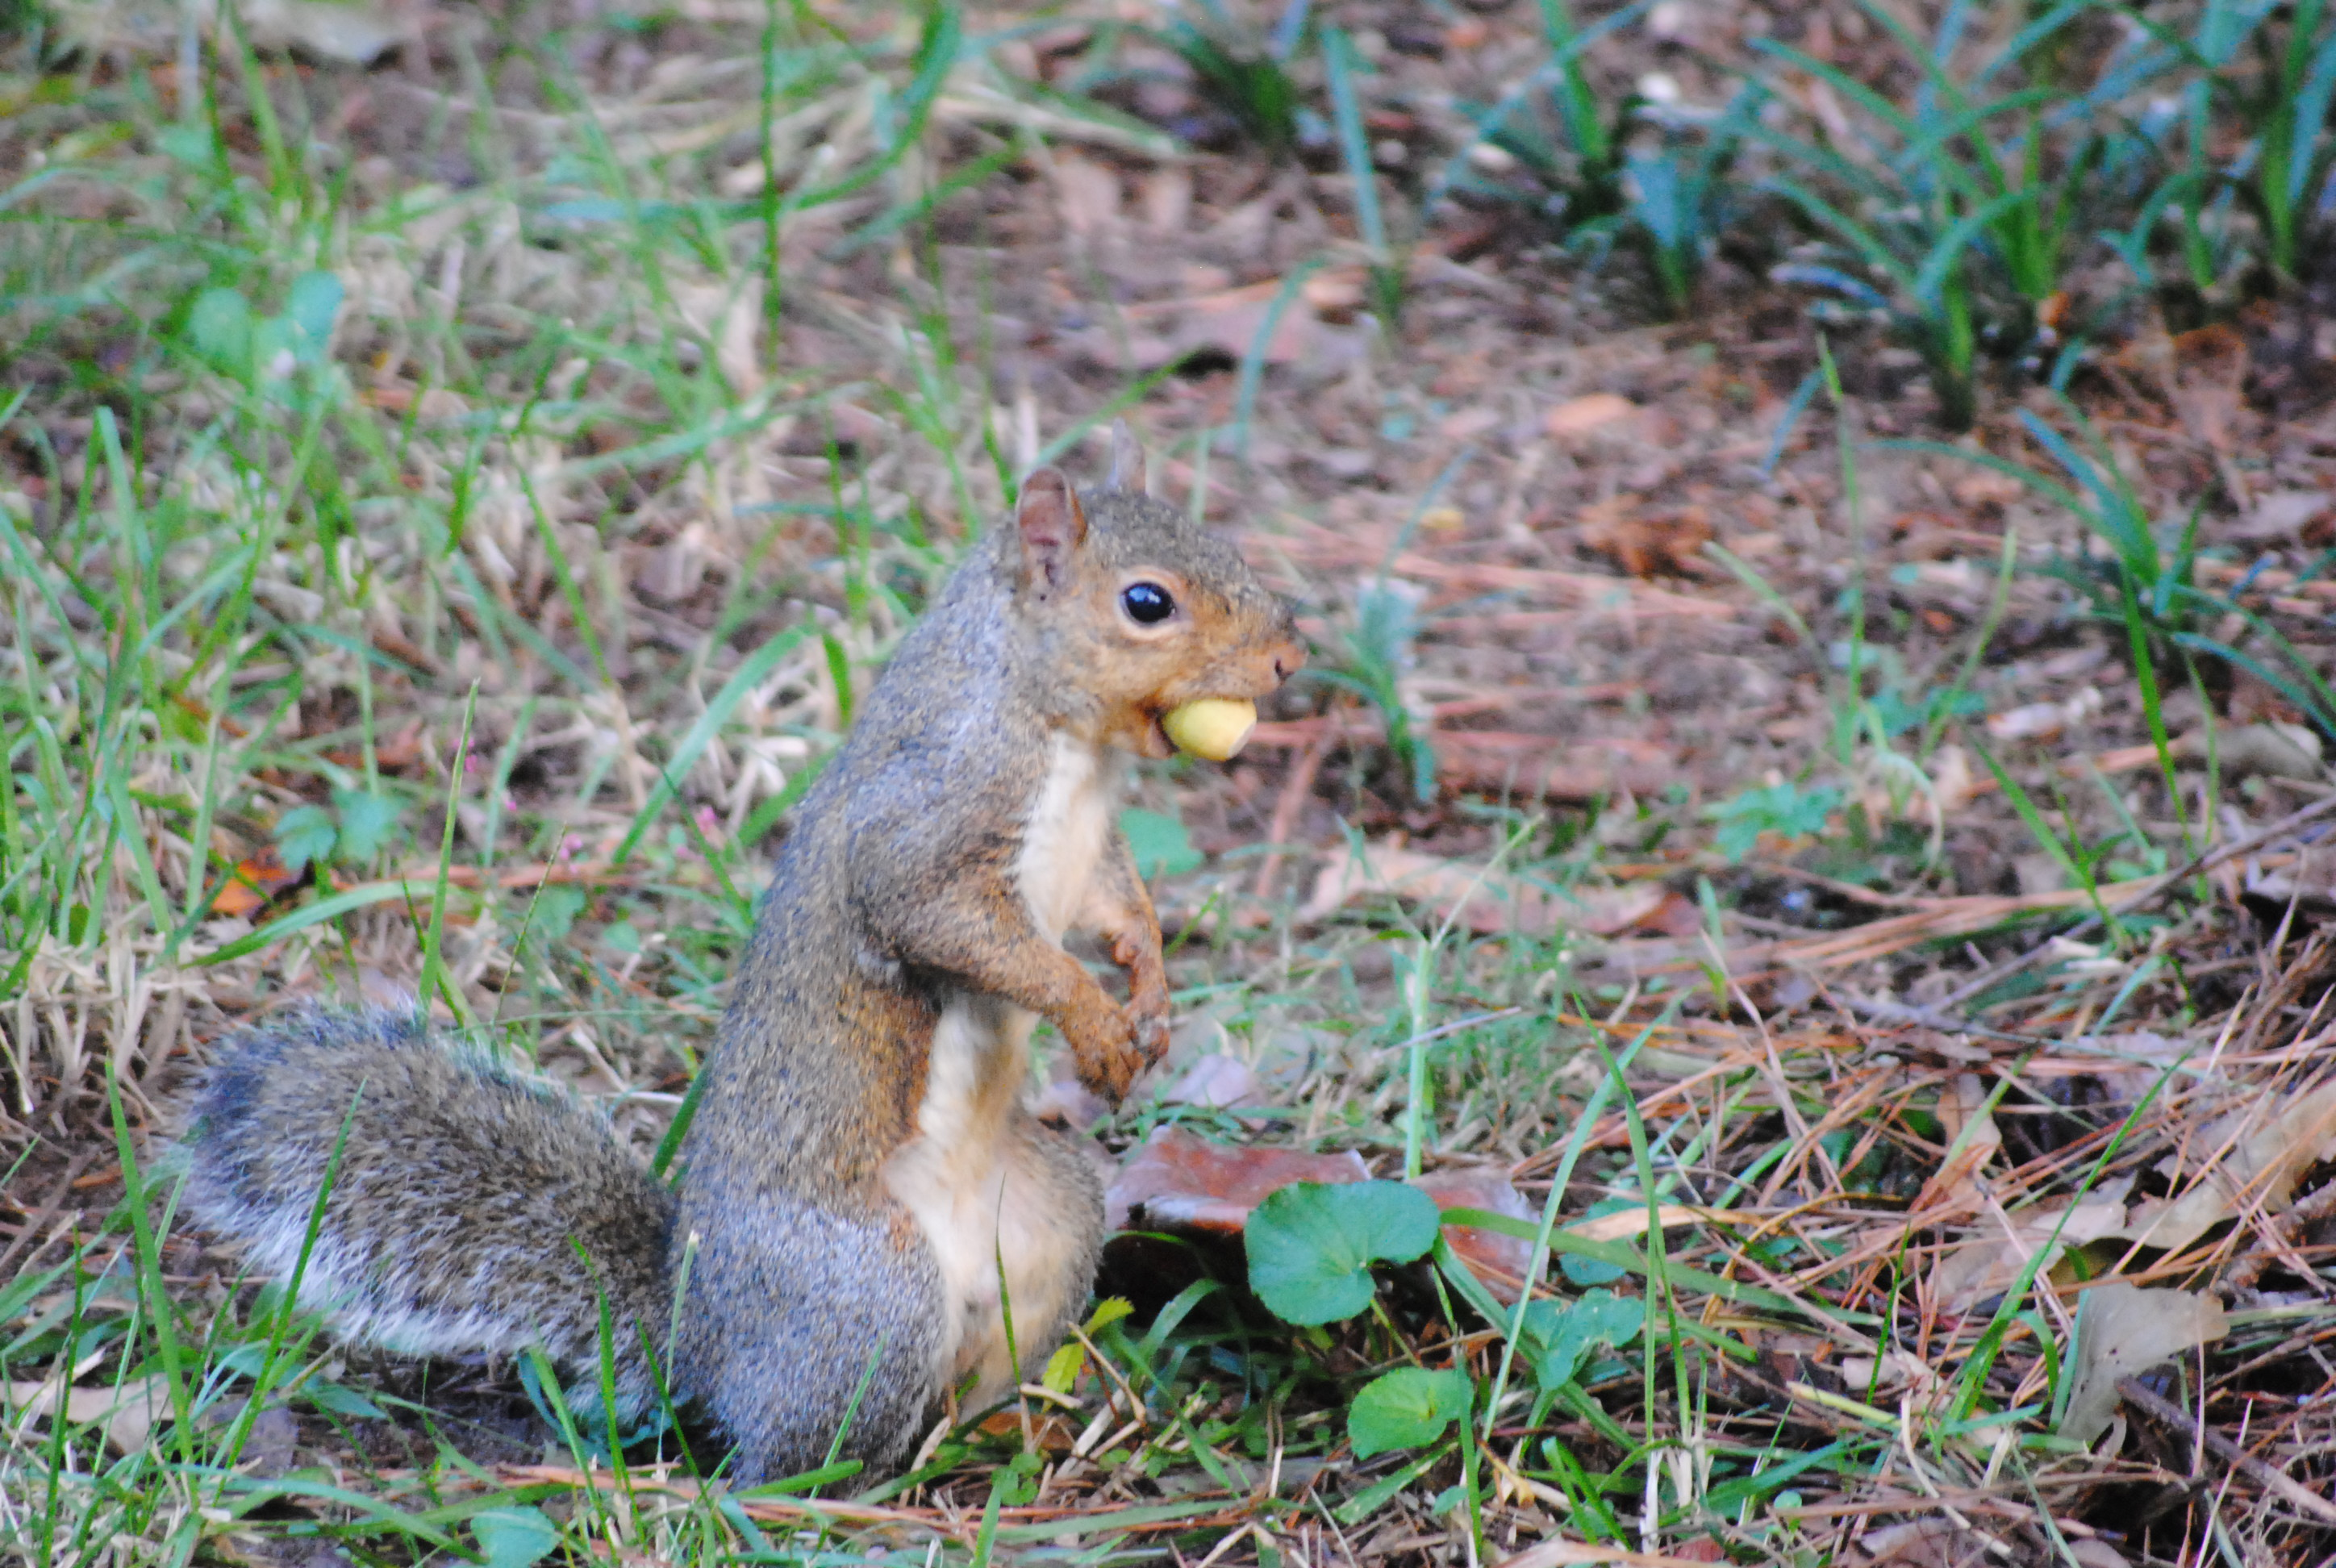 Nut in mouth, Animal, Food, Nature, Nut, HQ Photo